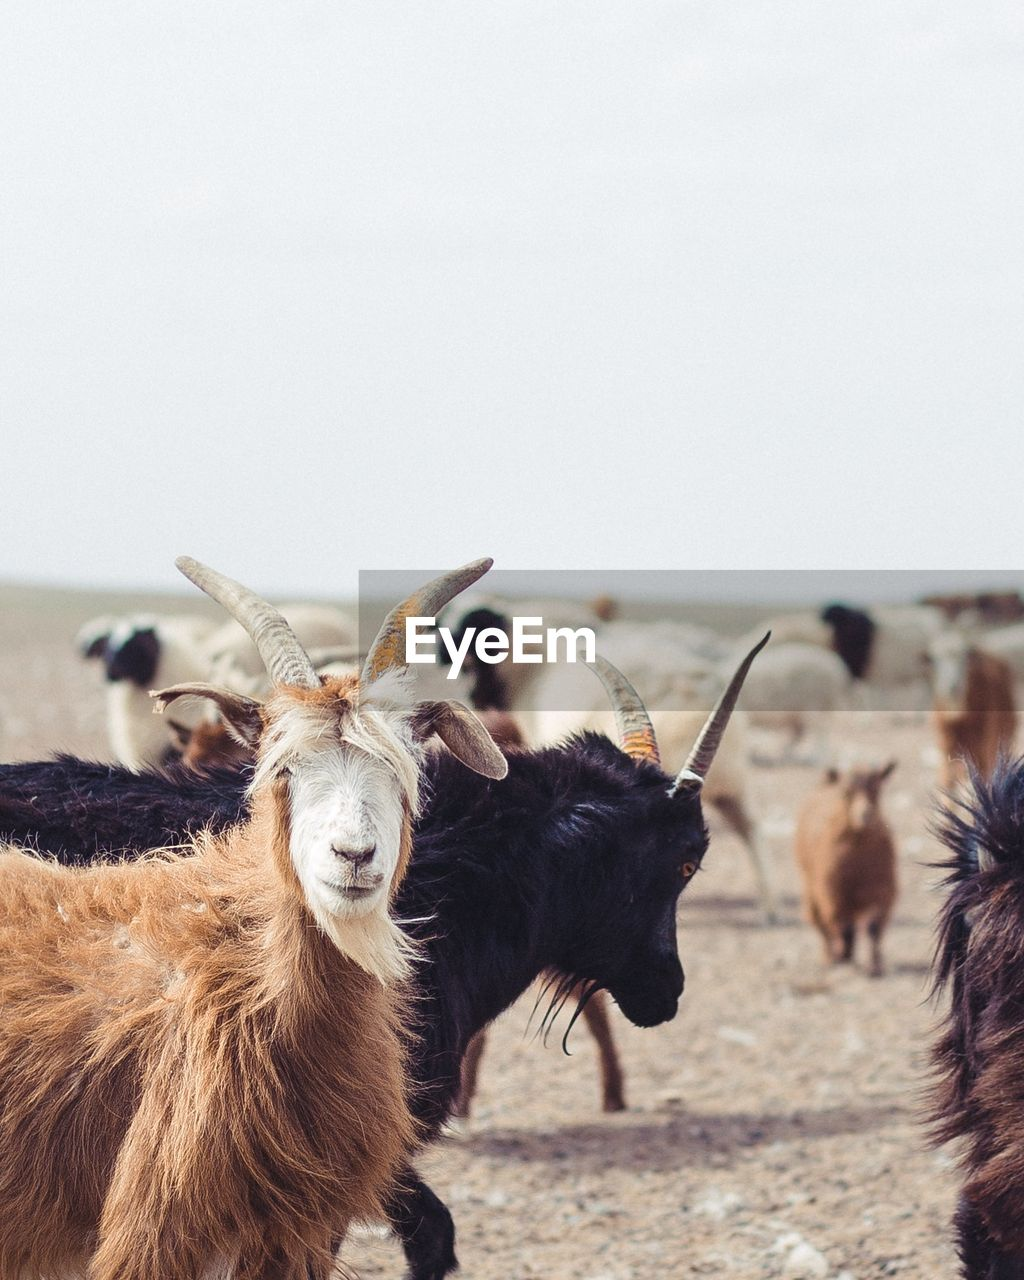 mammal, animal, animal themes, domestic animals, group of animals, domestic, vertebrate, livestock, focus on foreground, pets, horned, animal wildlife, no people, copy space, nature, land, field, day, cattle, sky, herbivorous, animal head, herd